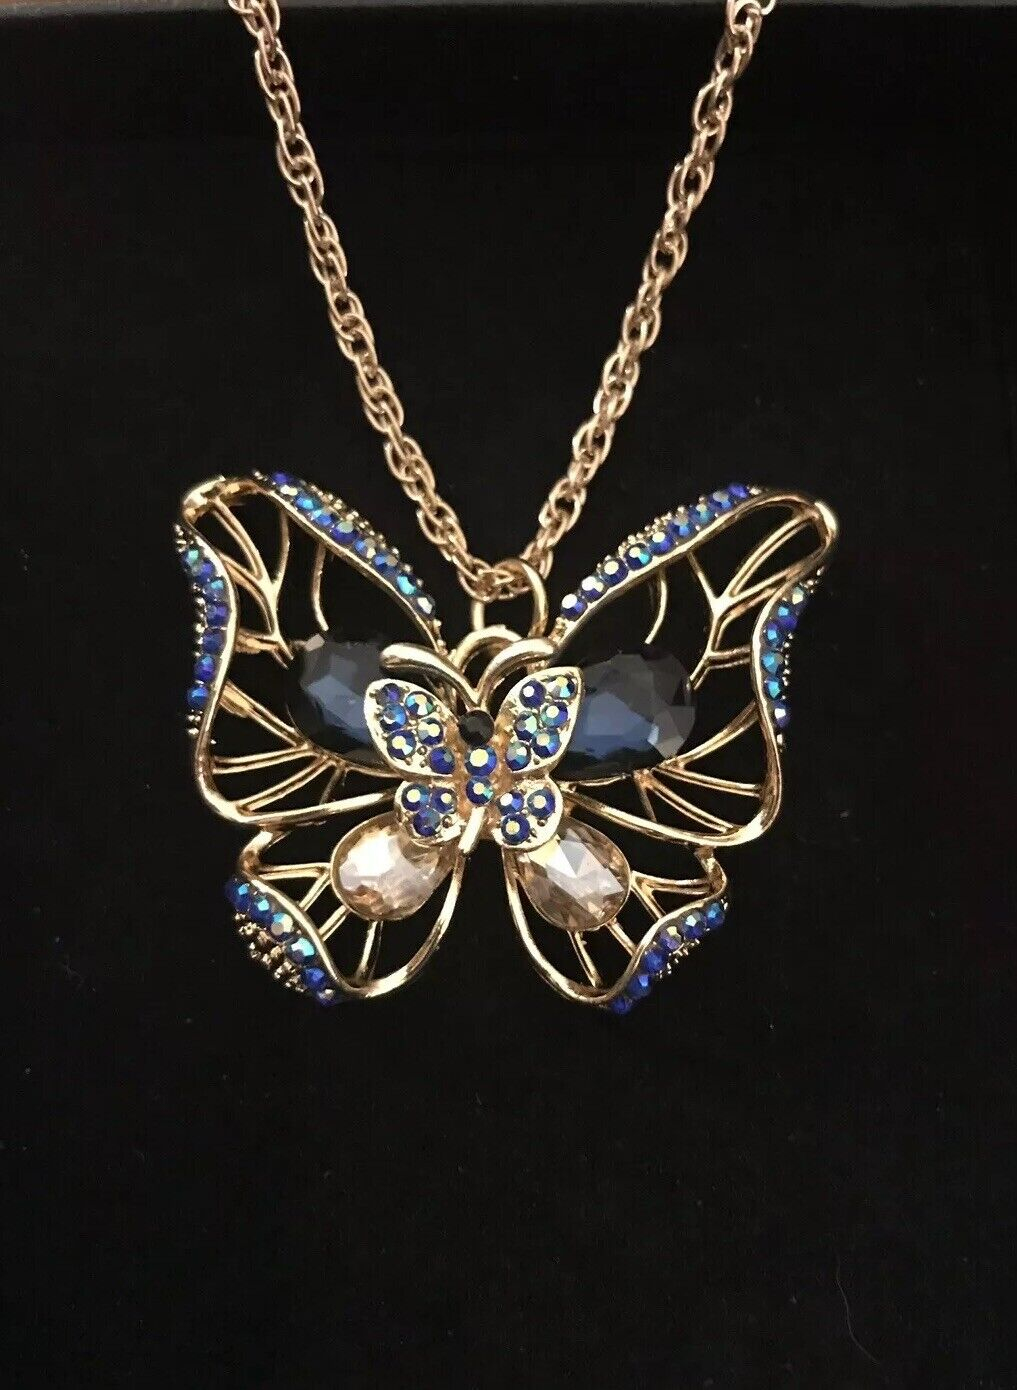 Betsey Johnson goldtone Sculptured Butterfly Pendent Faux Sapphires & Crystals